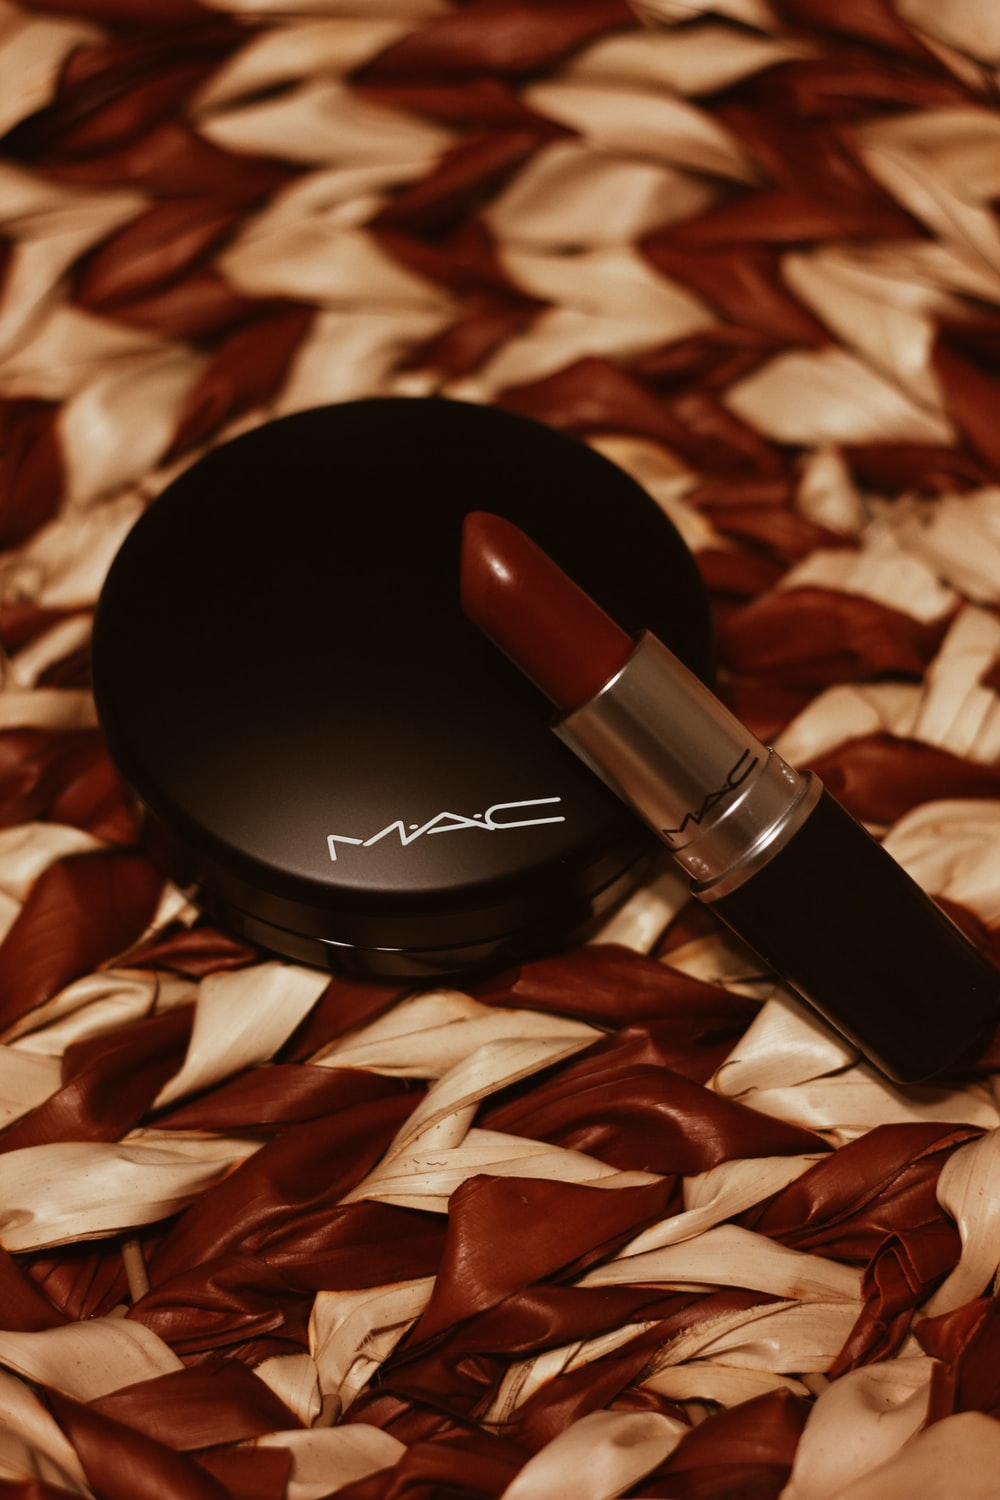 Mac Cosmetics Pictures Free